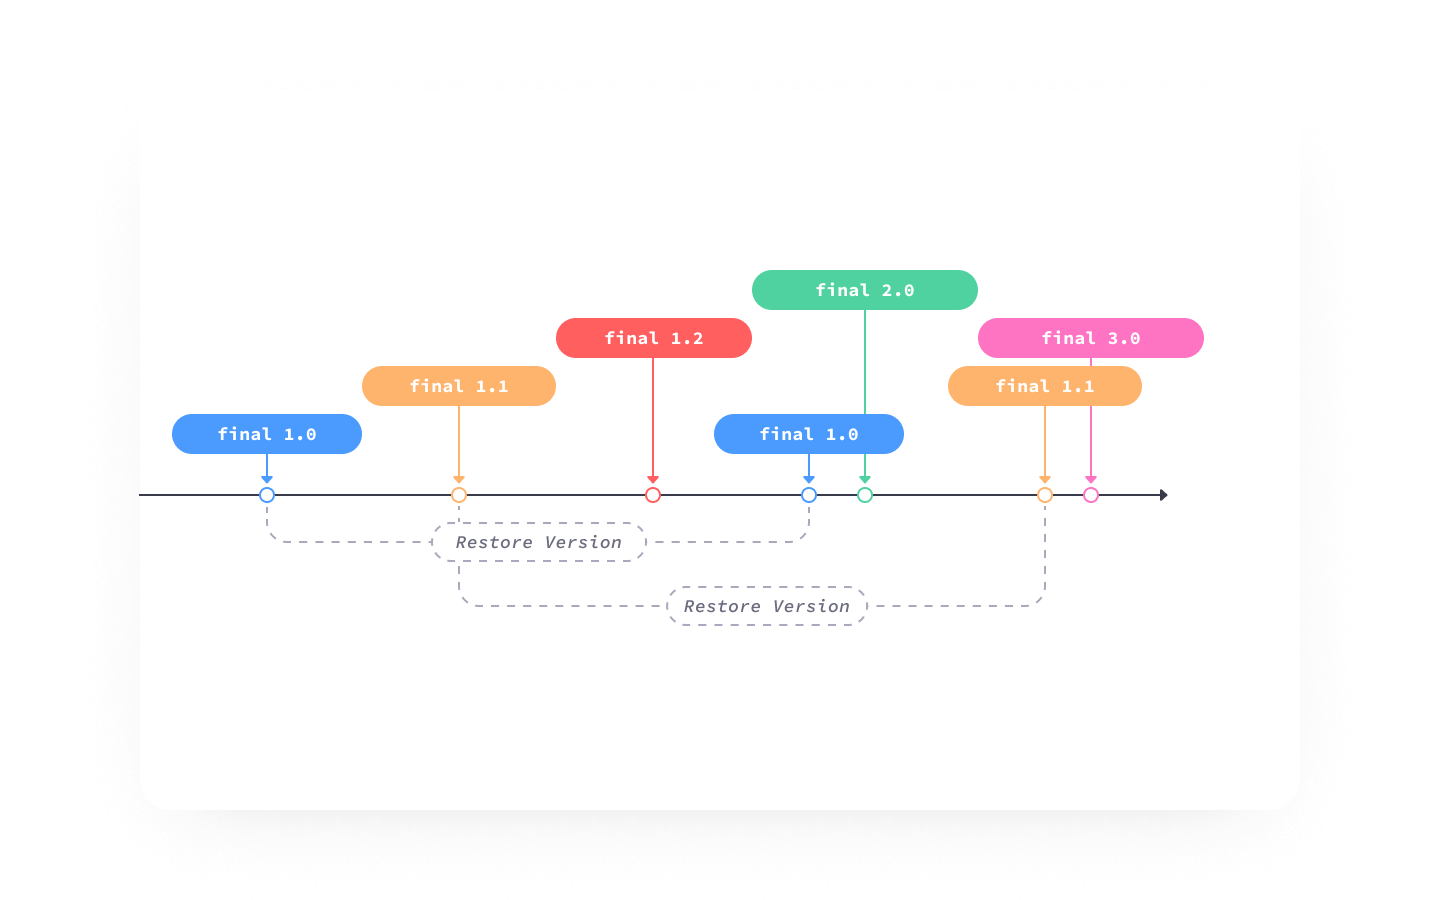 A diagram showing how restoring past versions of a Figma file works